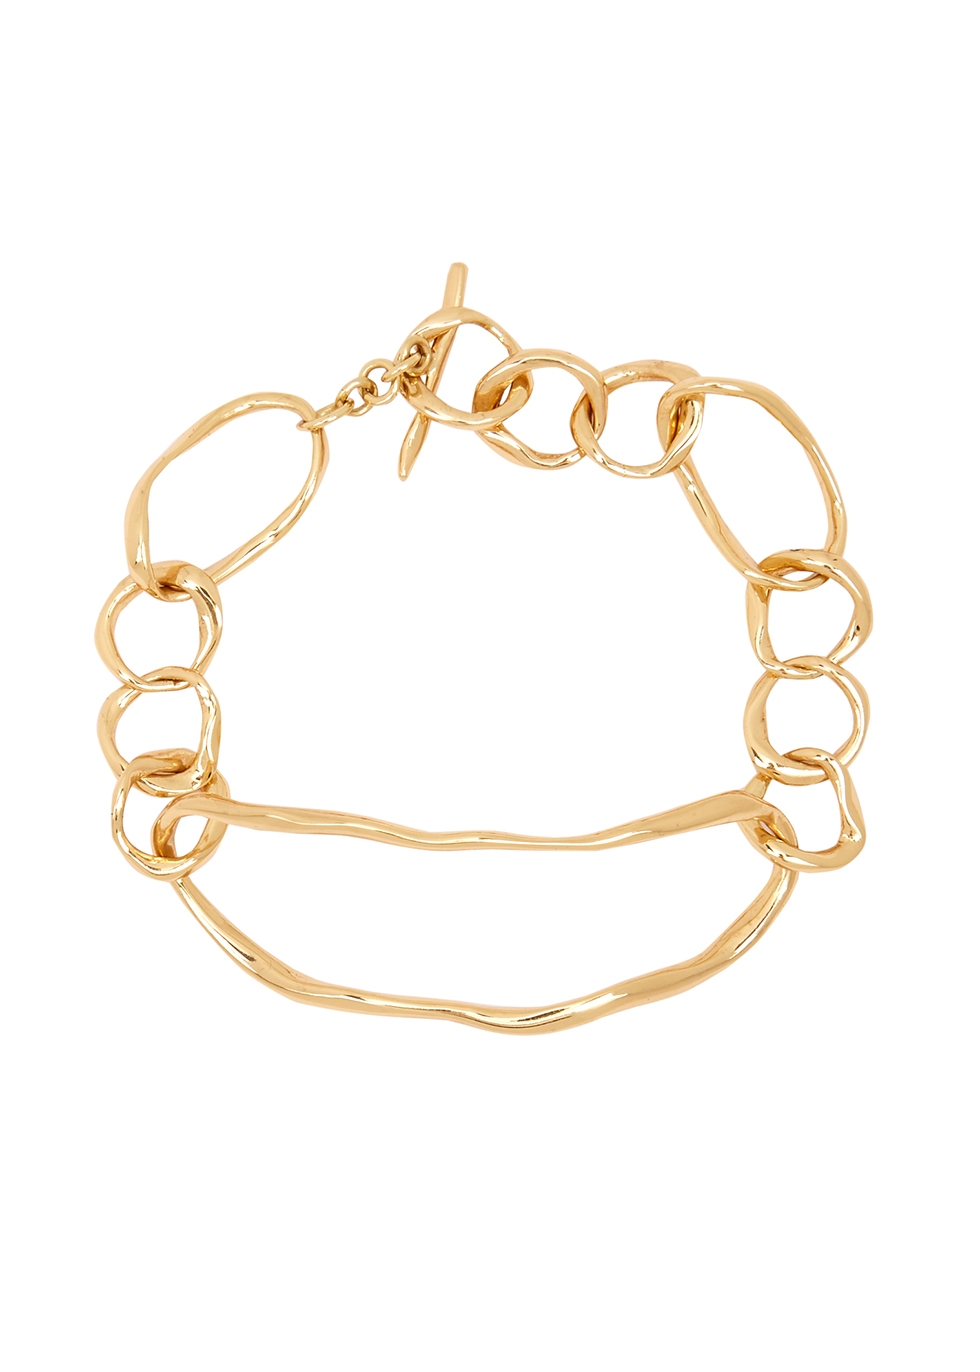 Distorted 24kt gold-plated bracelet